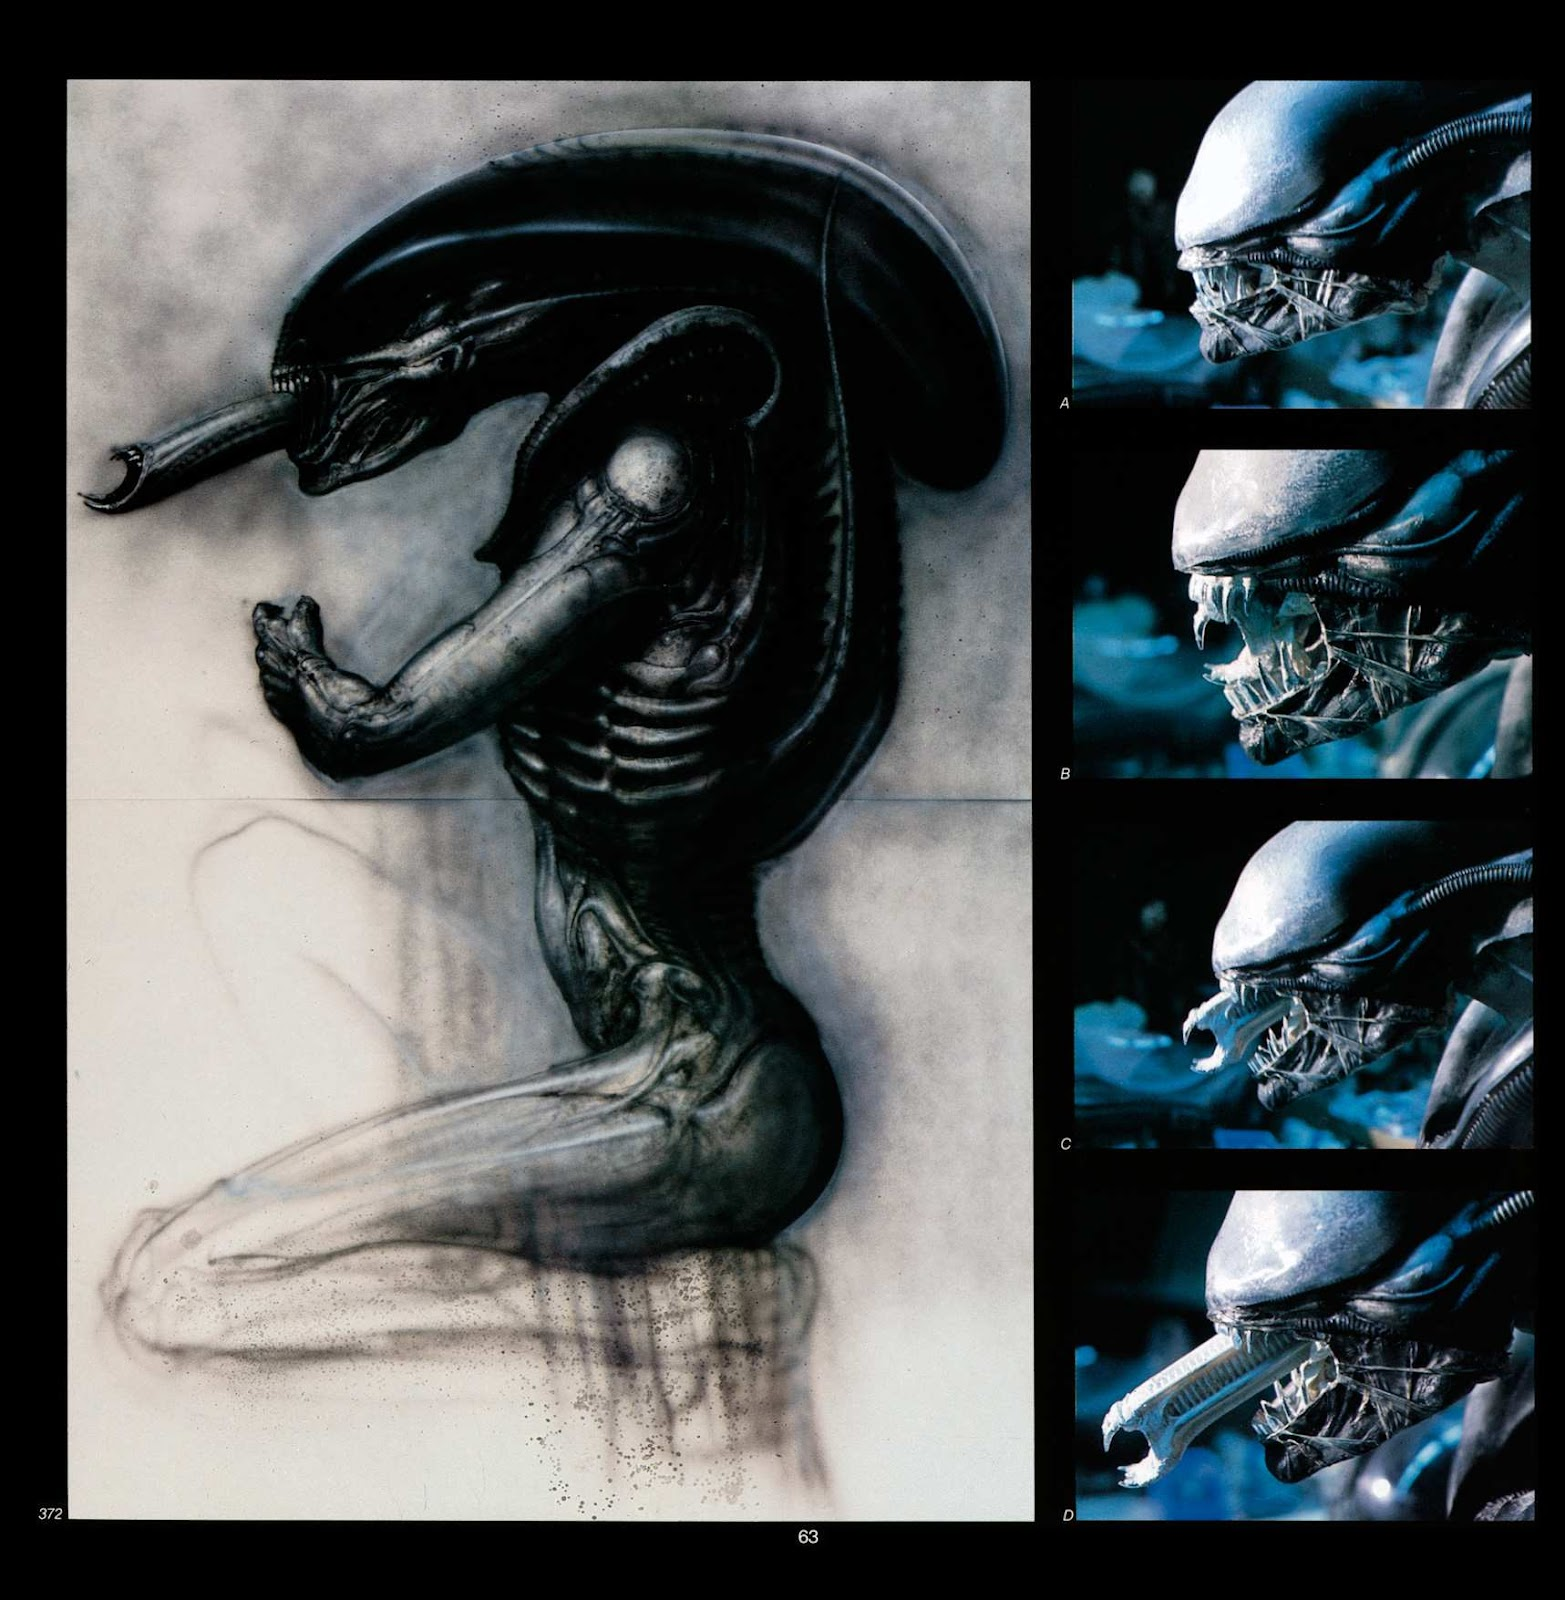 Read online Giger's Alien comic -  Issue # TPB - 65